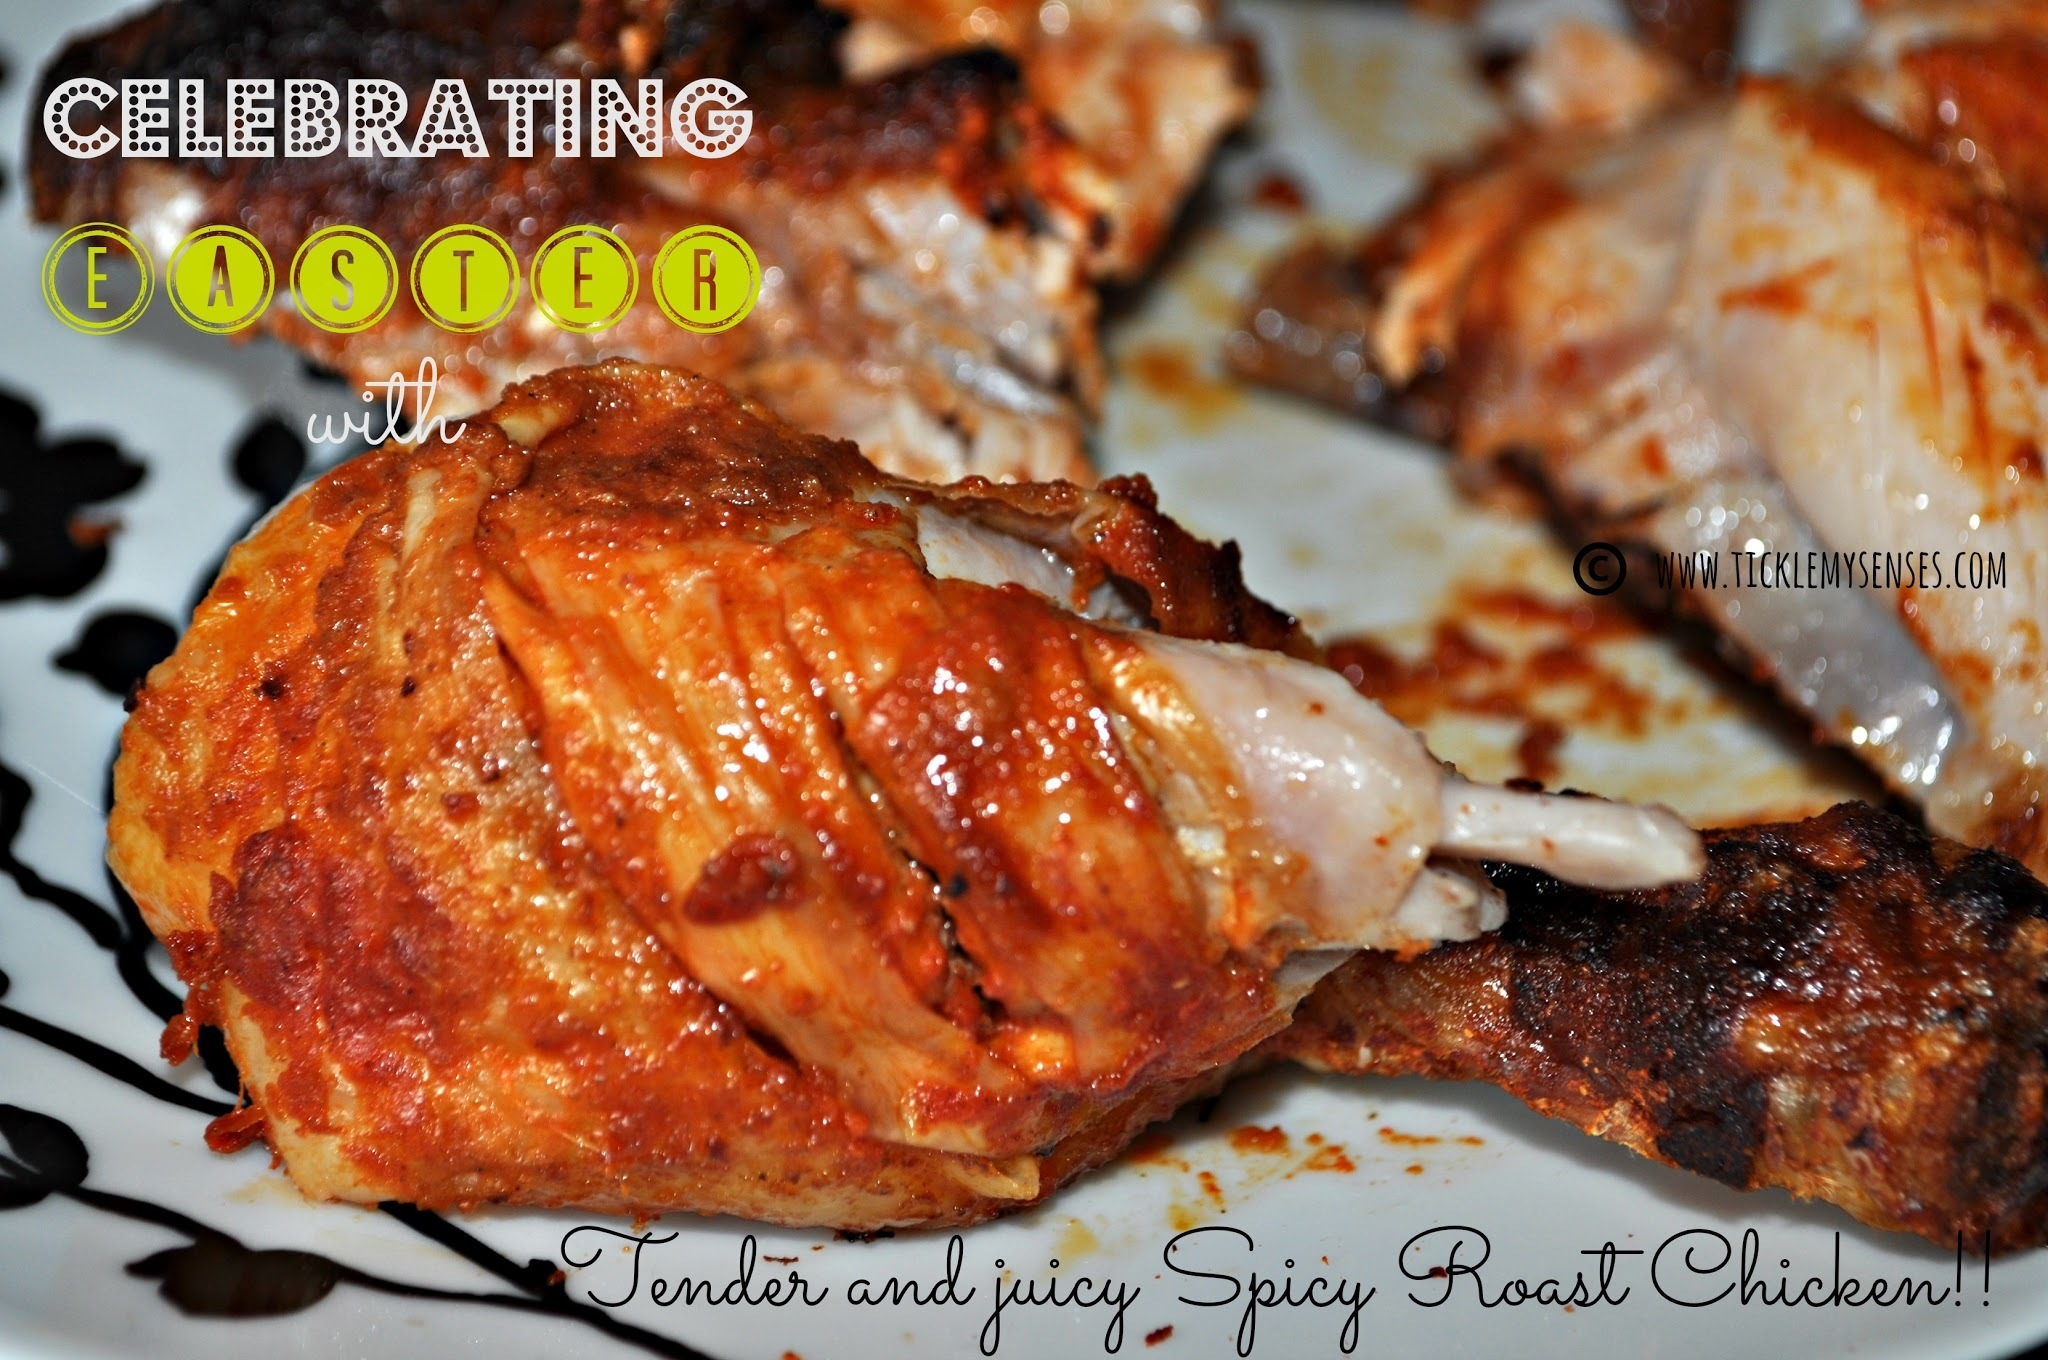 EASTER SPECIAL: Spicy Roast Chicken